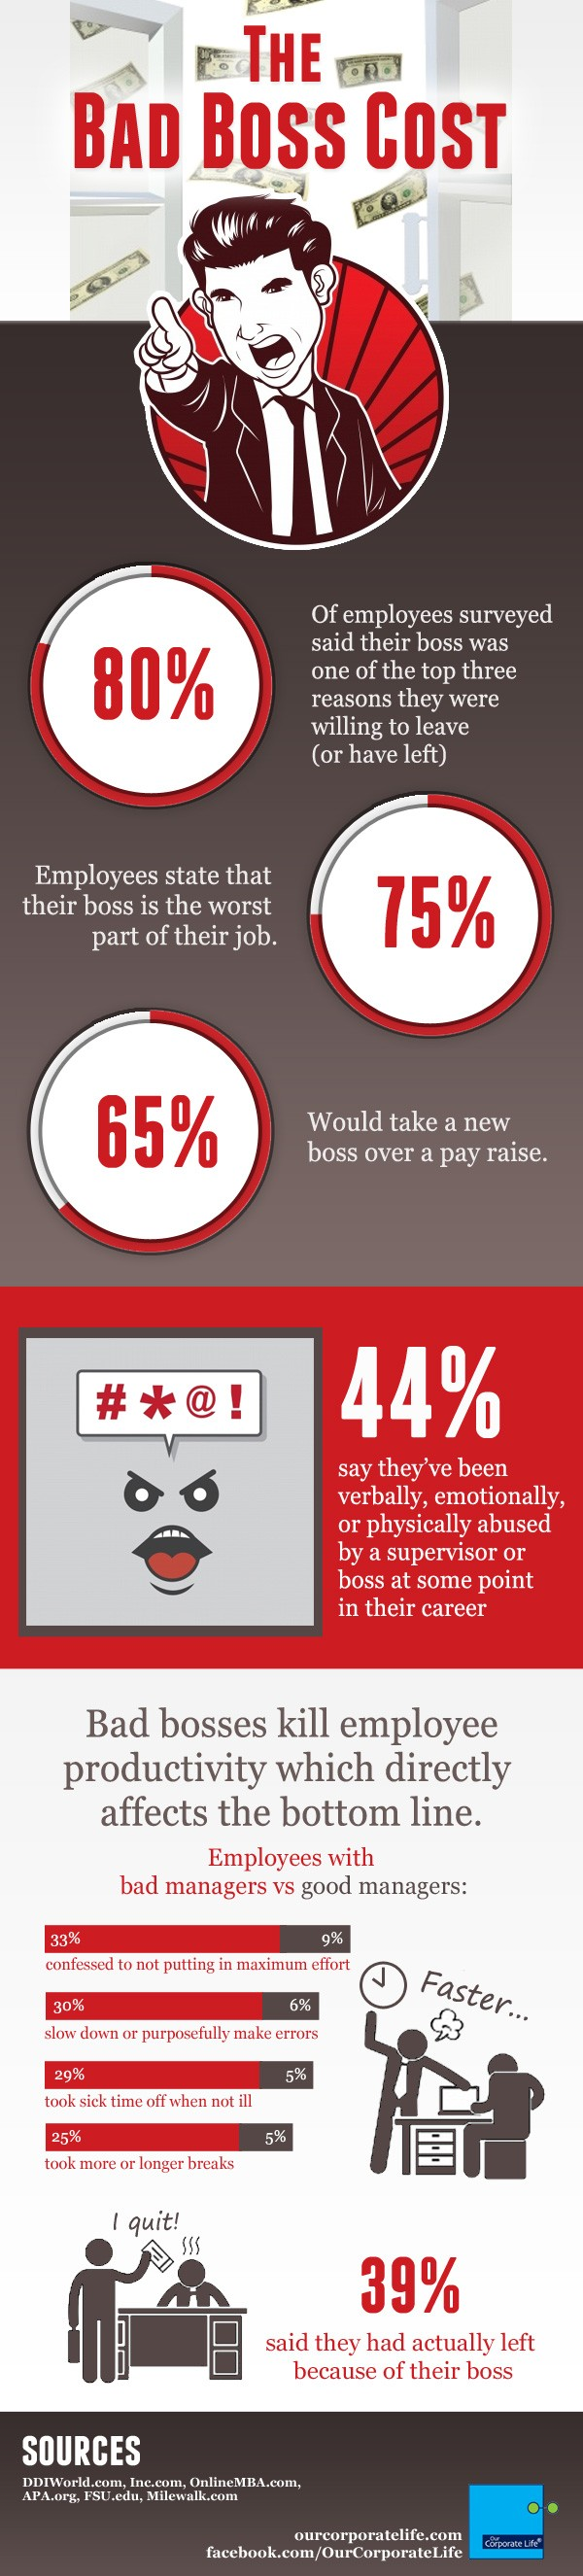 Amanda Mitchell and Our Corporate Life's graphic of bad boss cost infographic